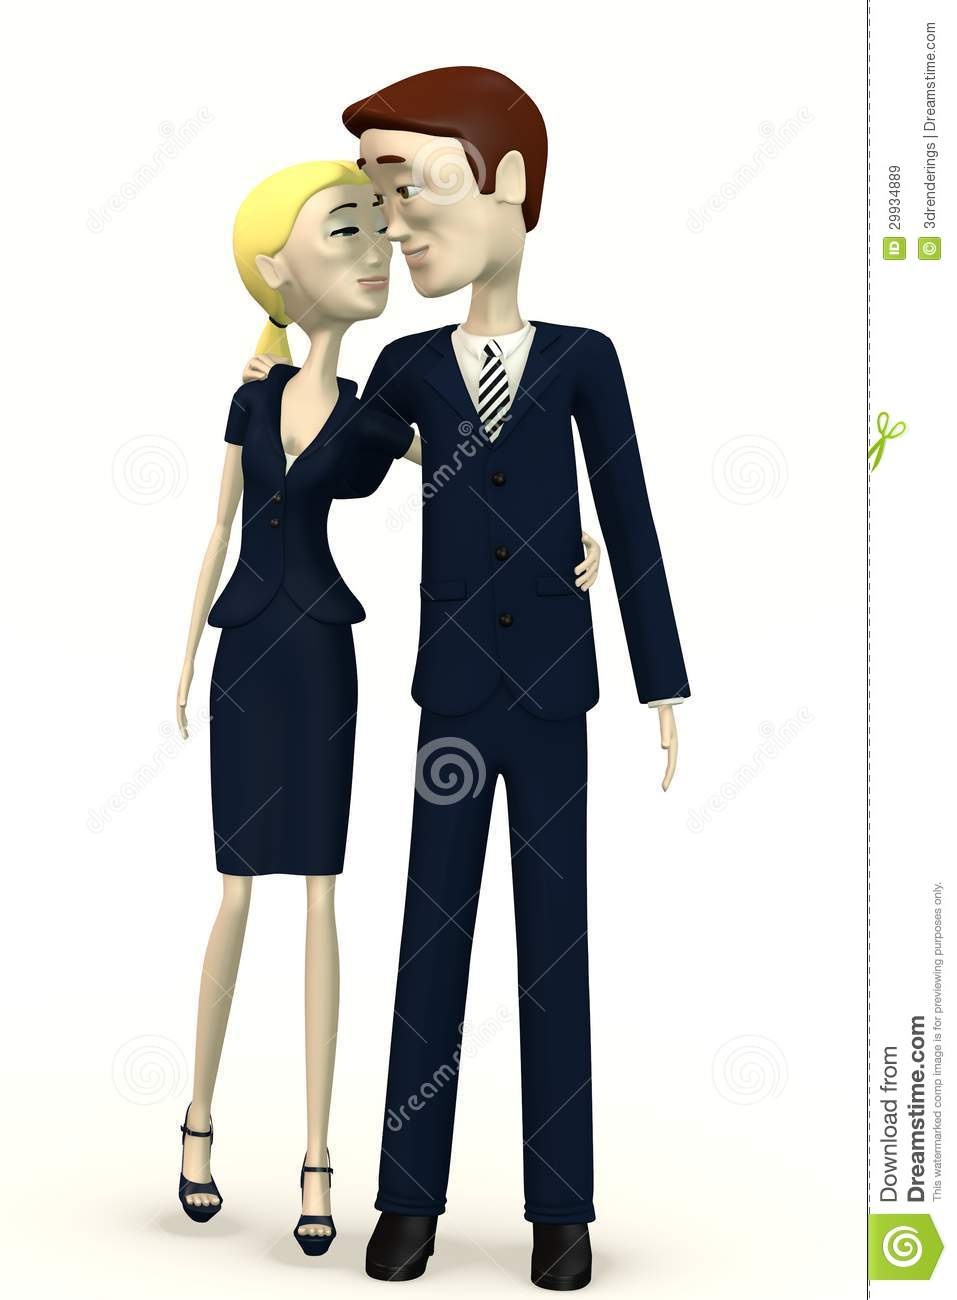 Cartoon Characters Couples : Cartoon characters happy couple royalty free stock images